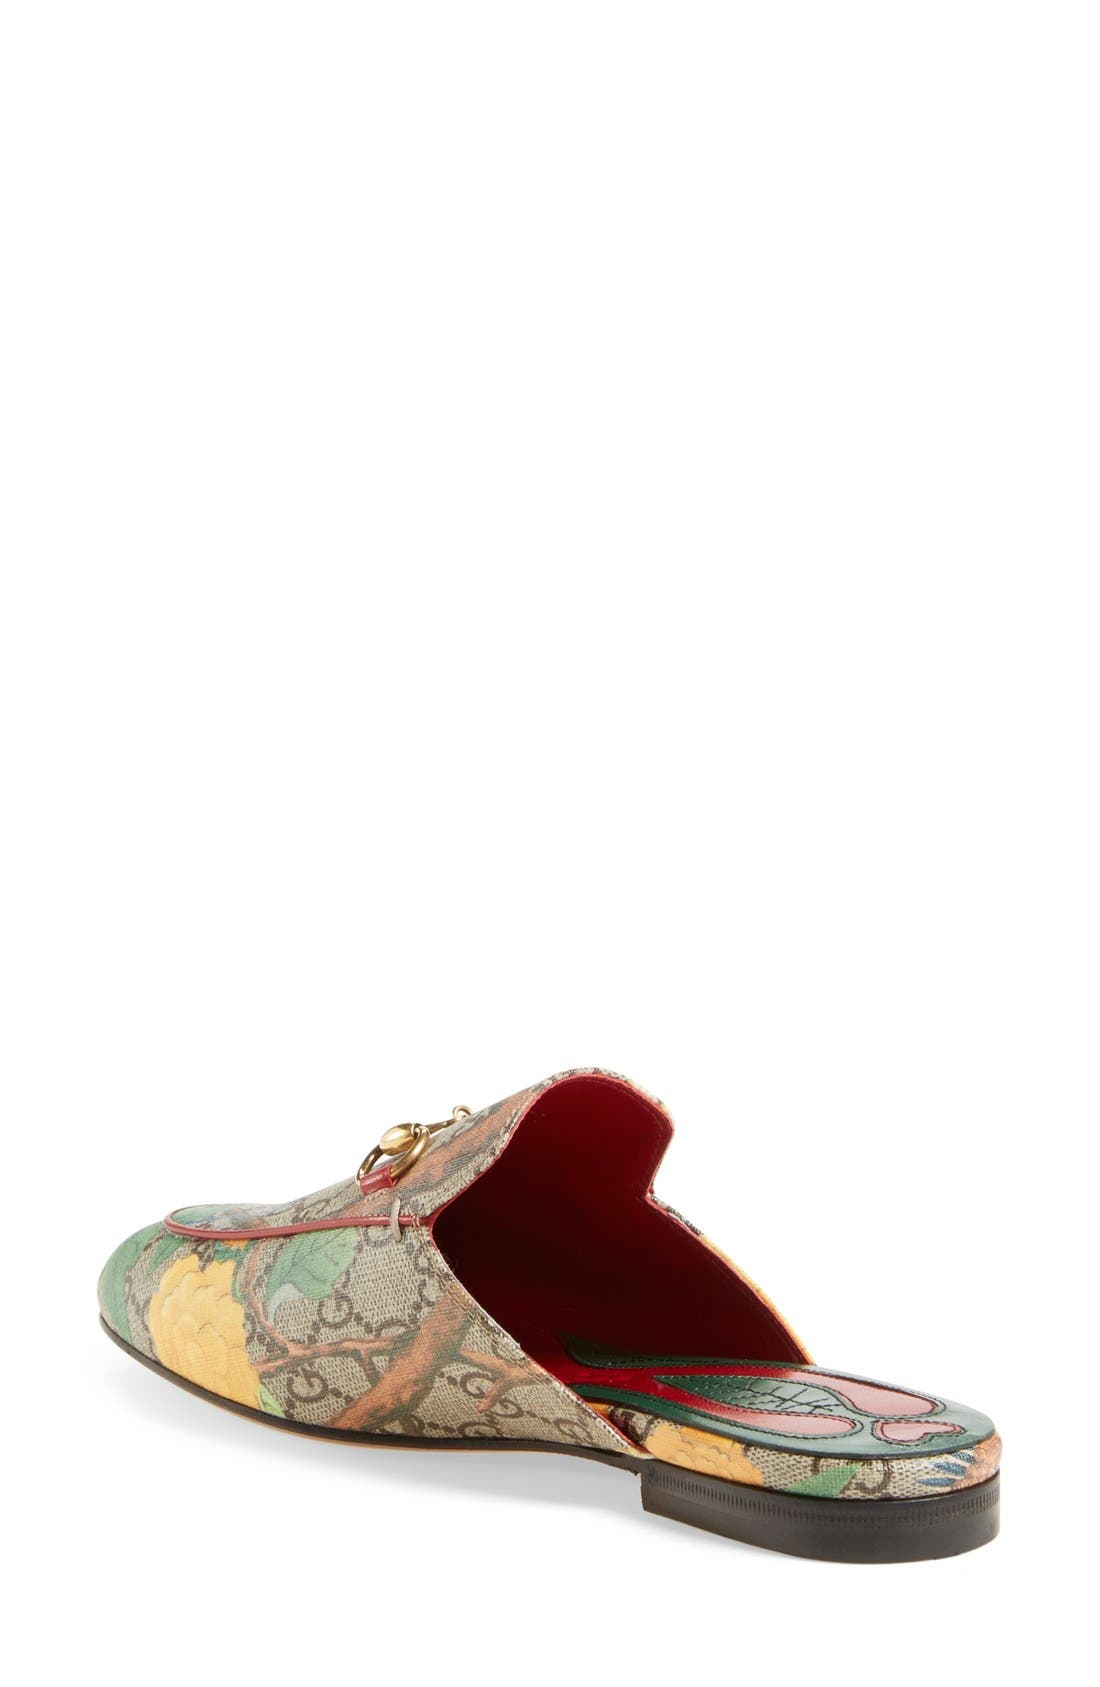 Alternate Image 2  - Gucci 'Princetown' Floral Print Mule Loafer (Women)